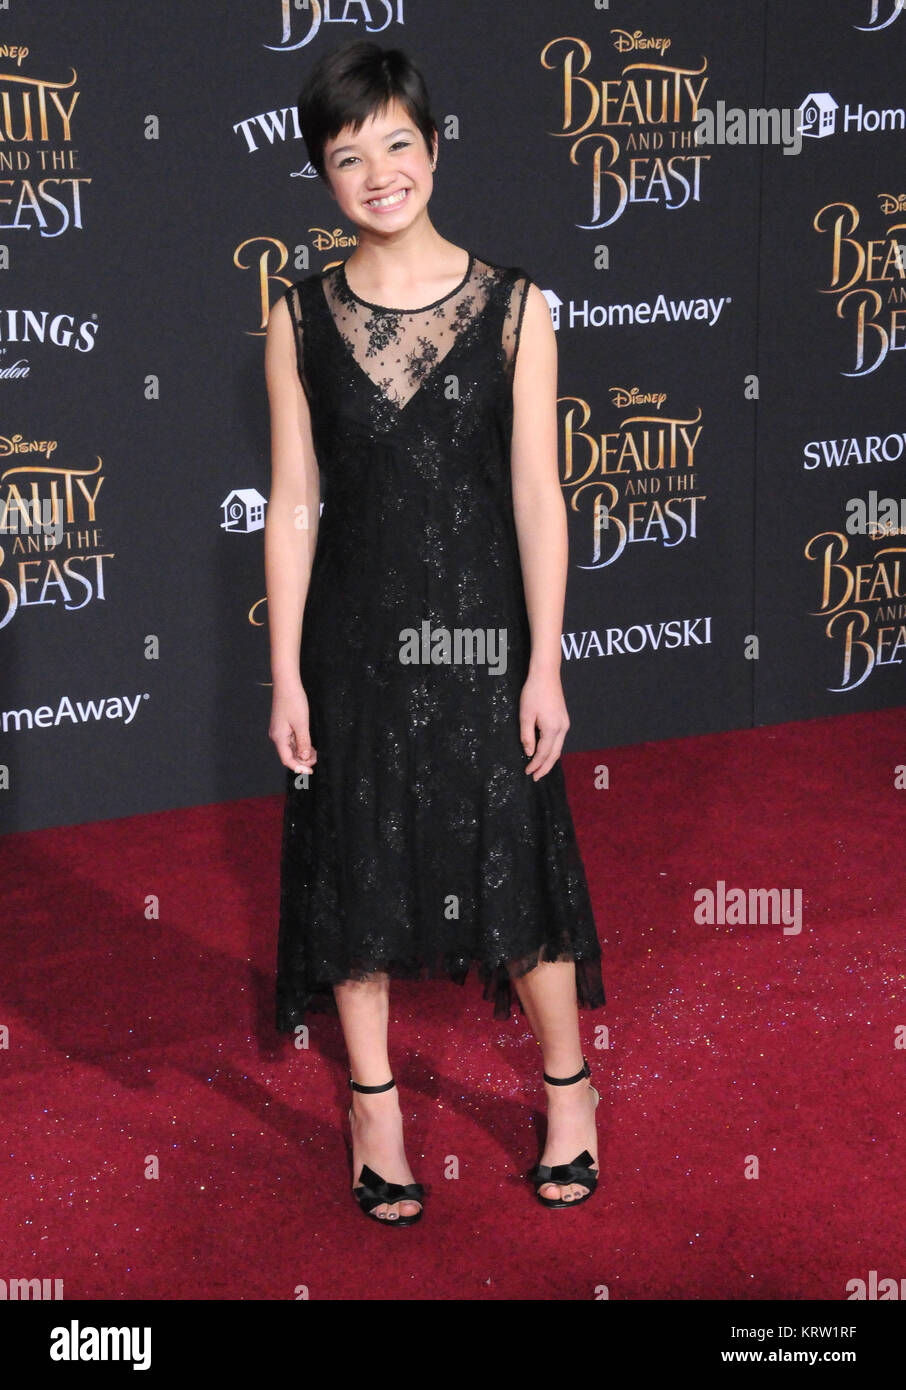 HOLLYWOOD, CA - MARCH 2:  Actress Peyton Elizabeth Lee attends Disney's 'Beauty And The Beast' World - Stock Image